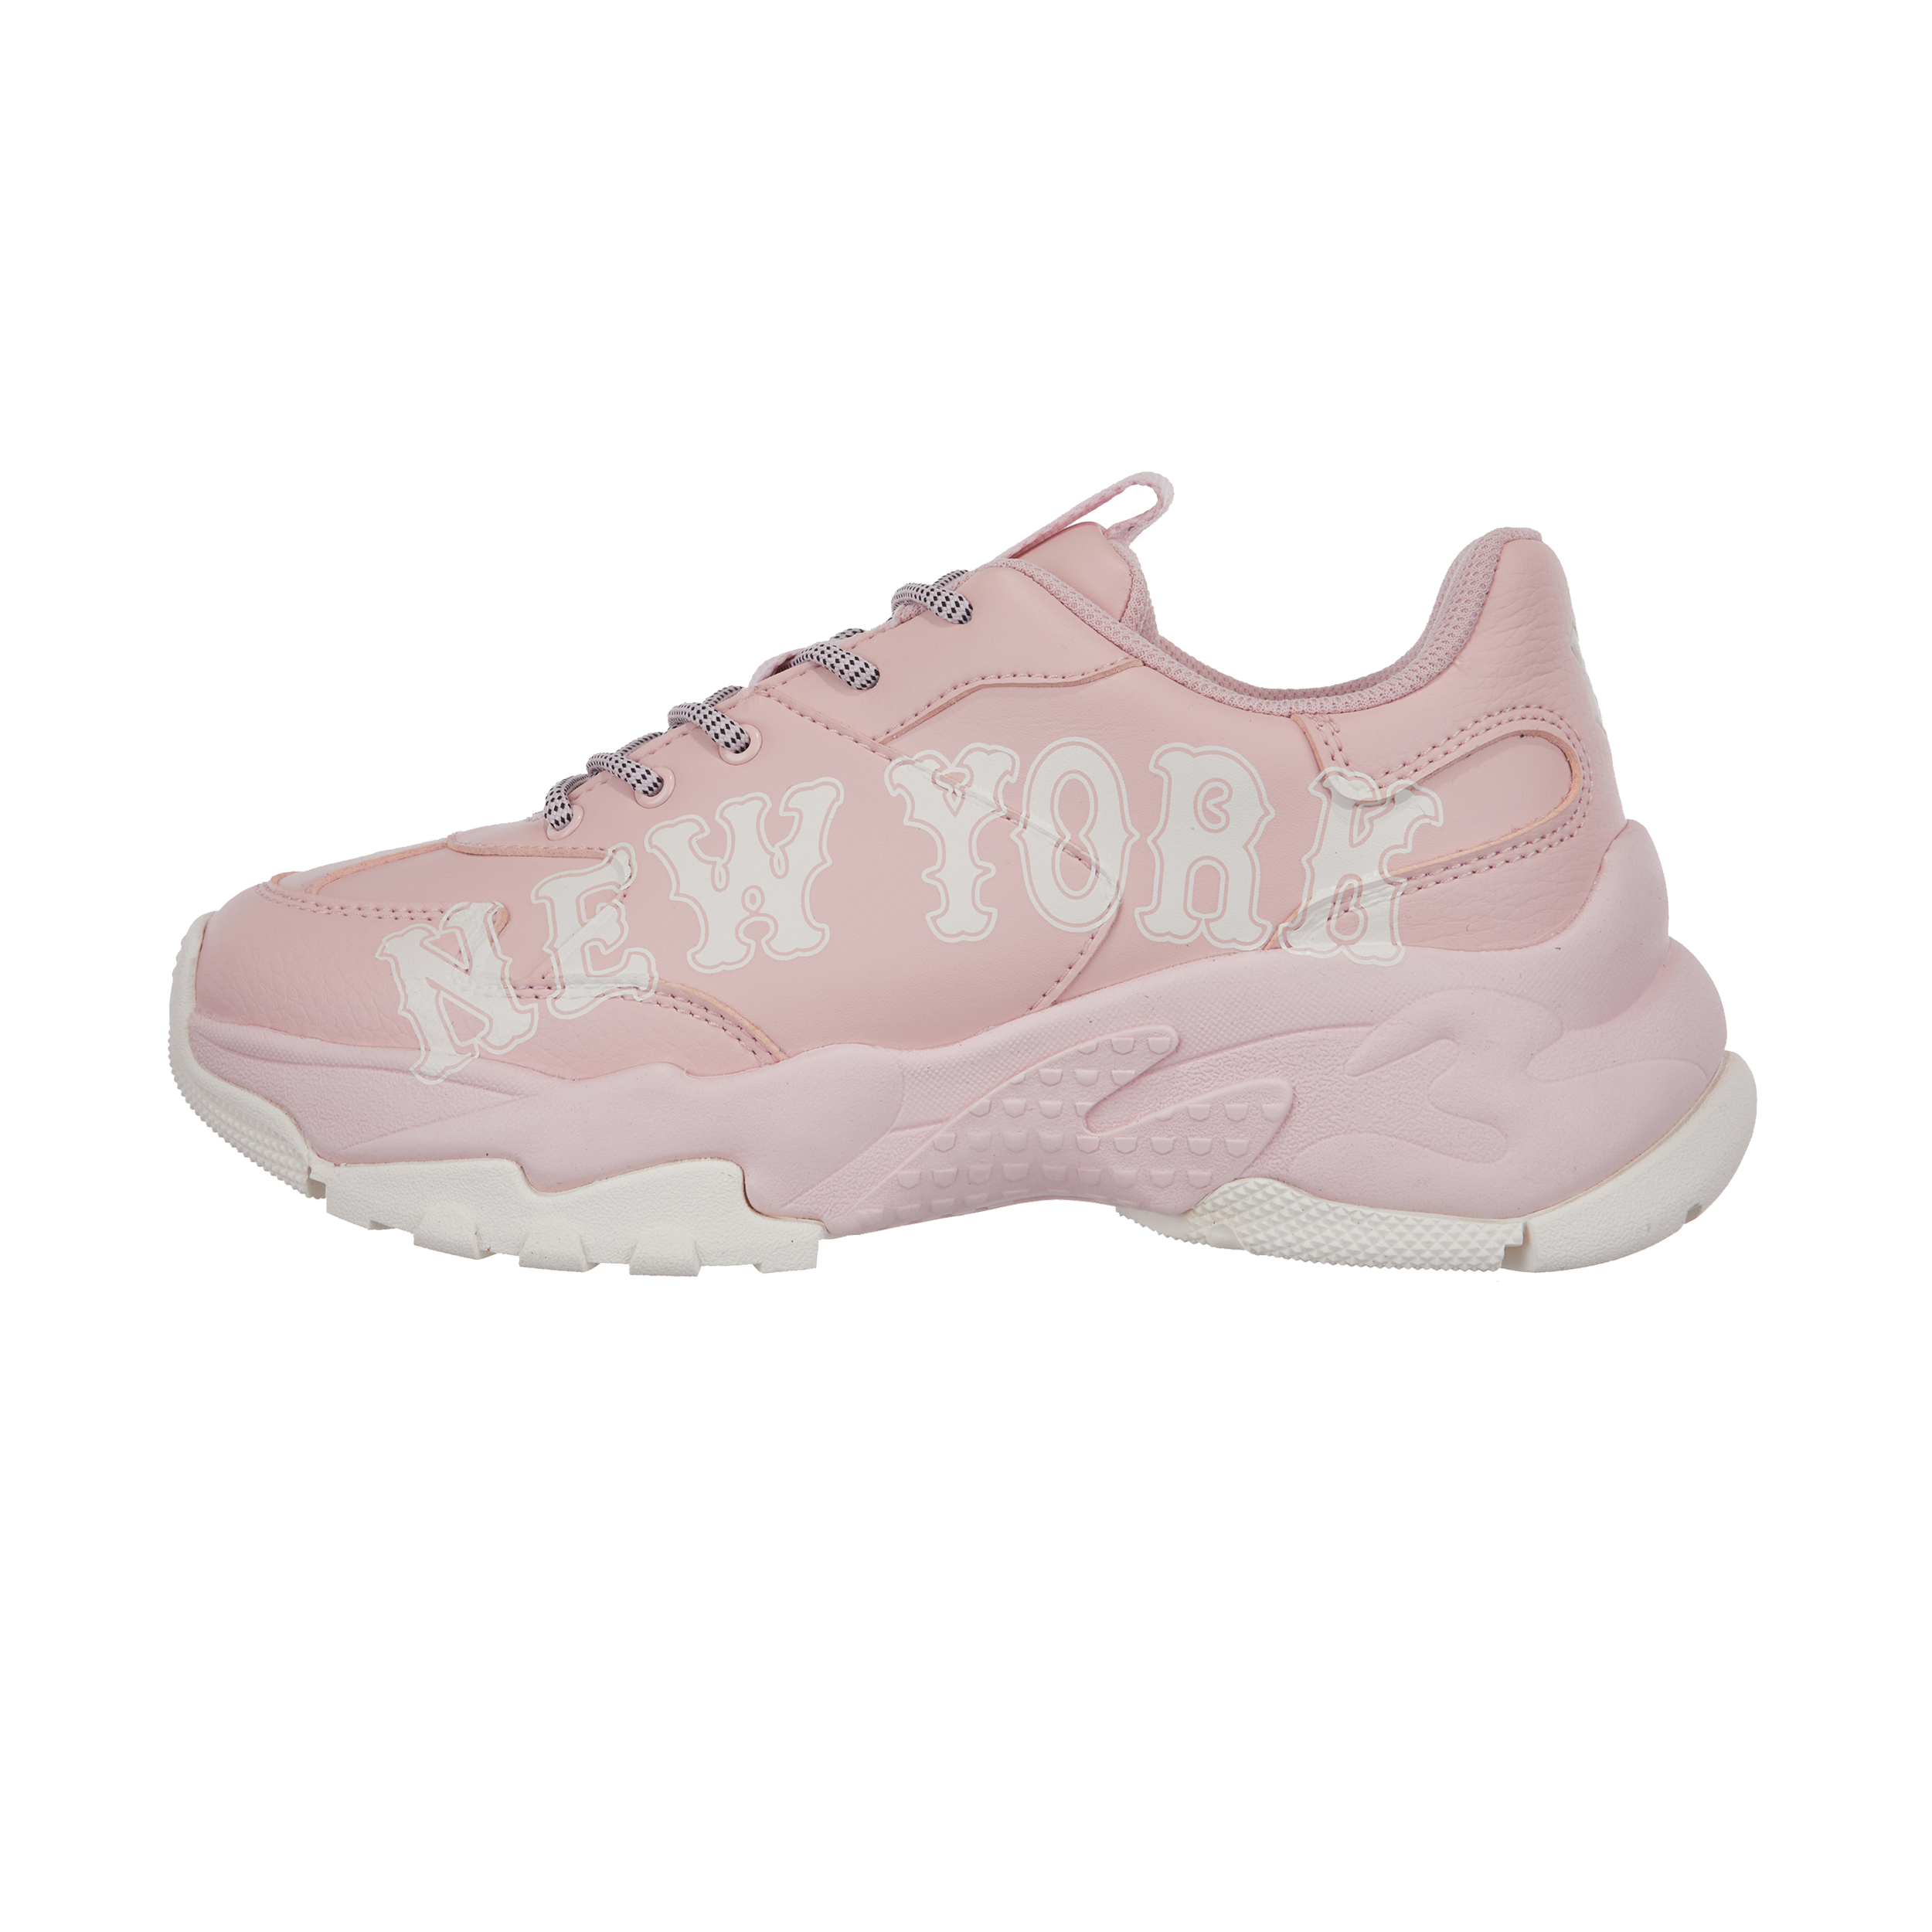 NEW YORK YANKEES SNEAKERS - BIG BALL CHUNKY P